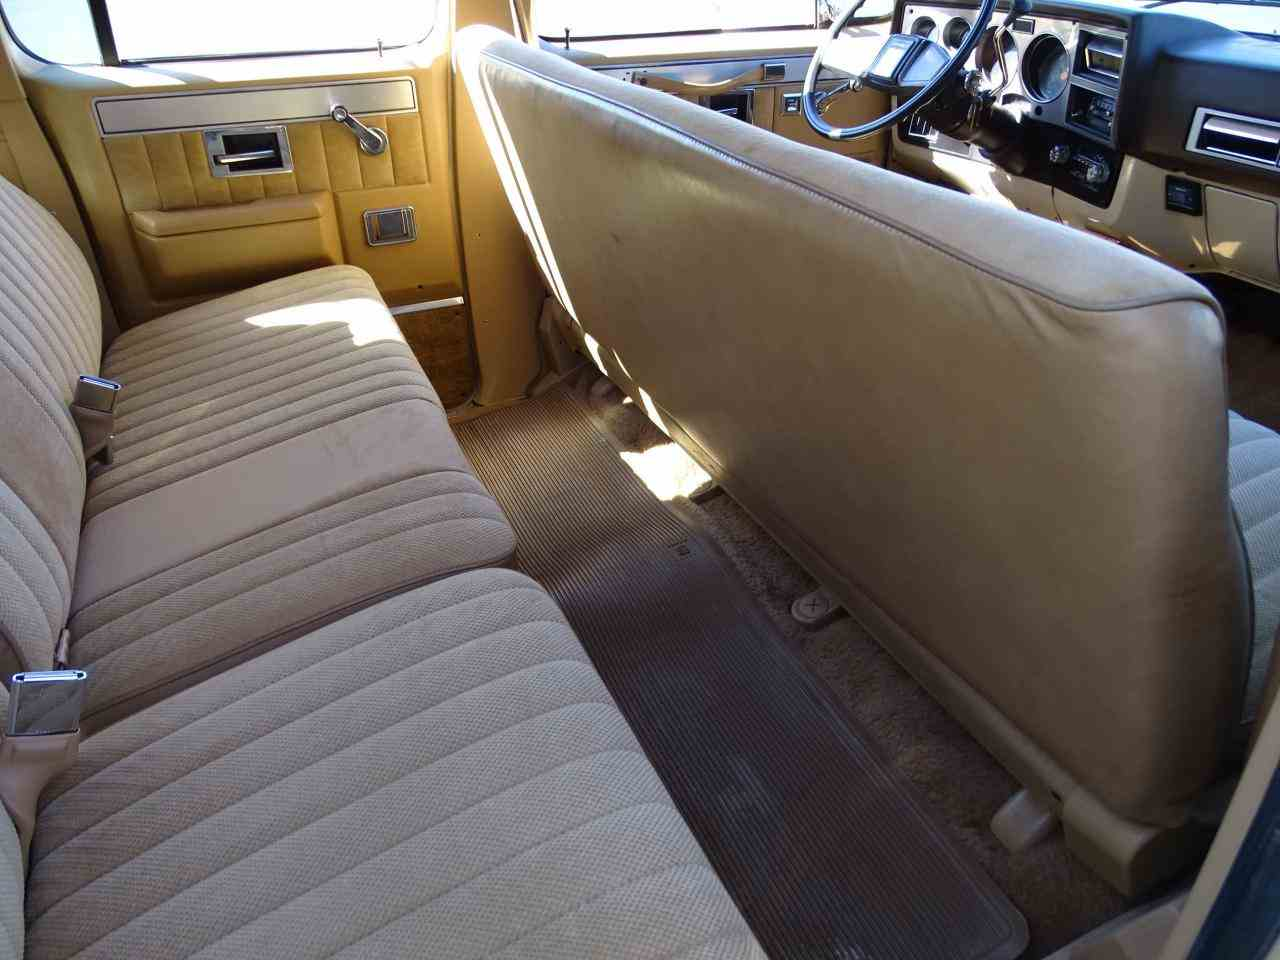 Large Picture of '86 C/K 20 located in Illinois - $10,995.00 Offered by Gateway Classic Cars - St. Louis - MZE8